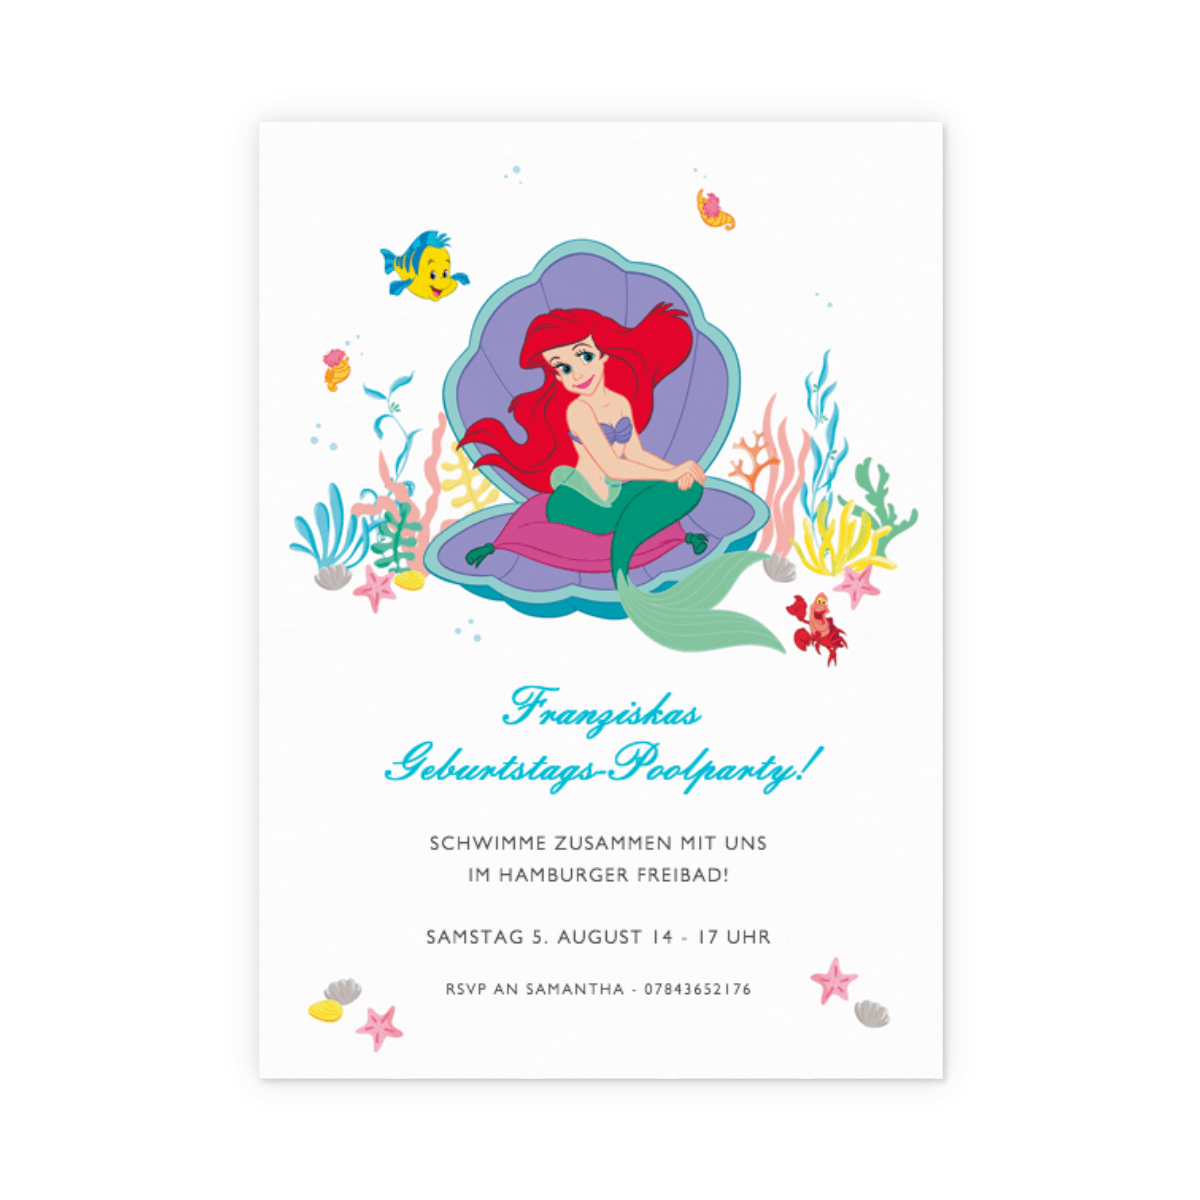 Https%3a%2f%2fwww.papier.com%2fproduct image%2f45202%2f4%2fthe little mermaid 8817 vorderseite 1552495091.png?ixlib=rb 1.1